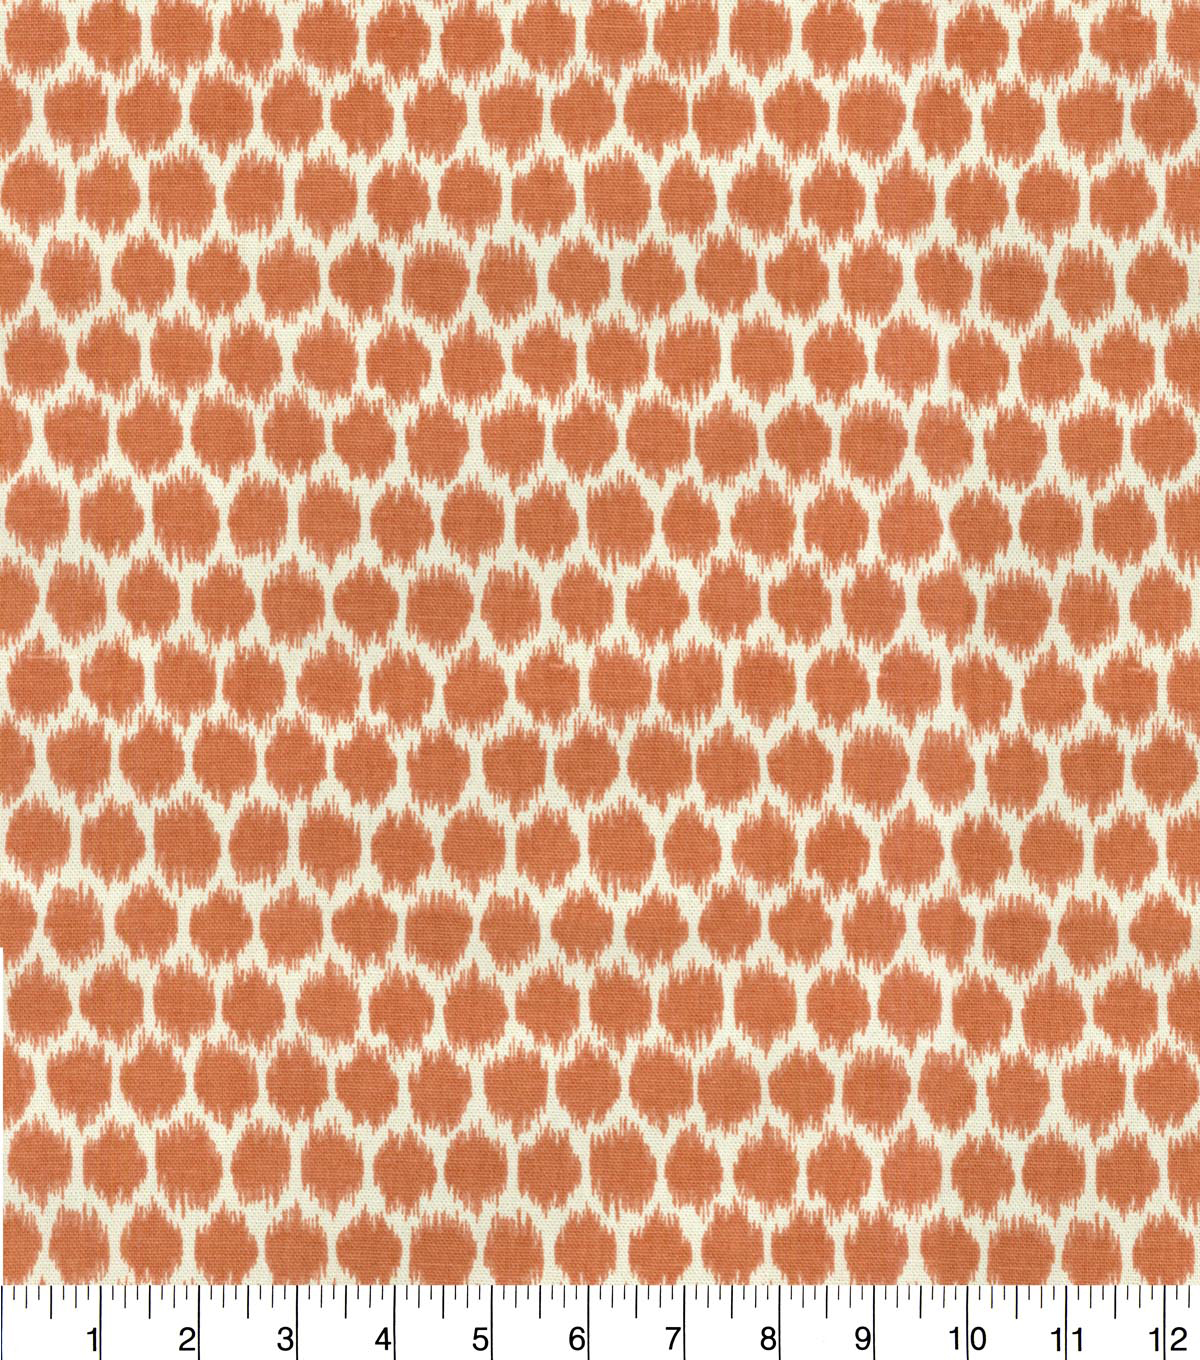 Waverly Upholstery Fabric 54''-Persimmon Seeing Spots